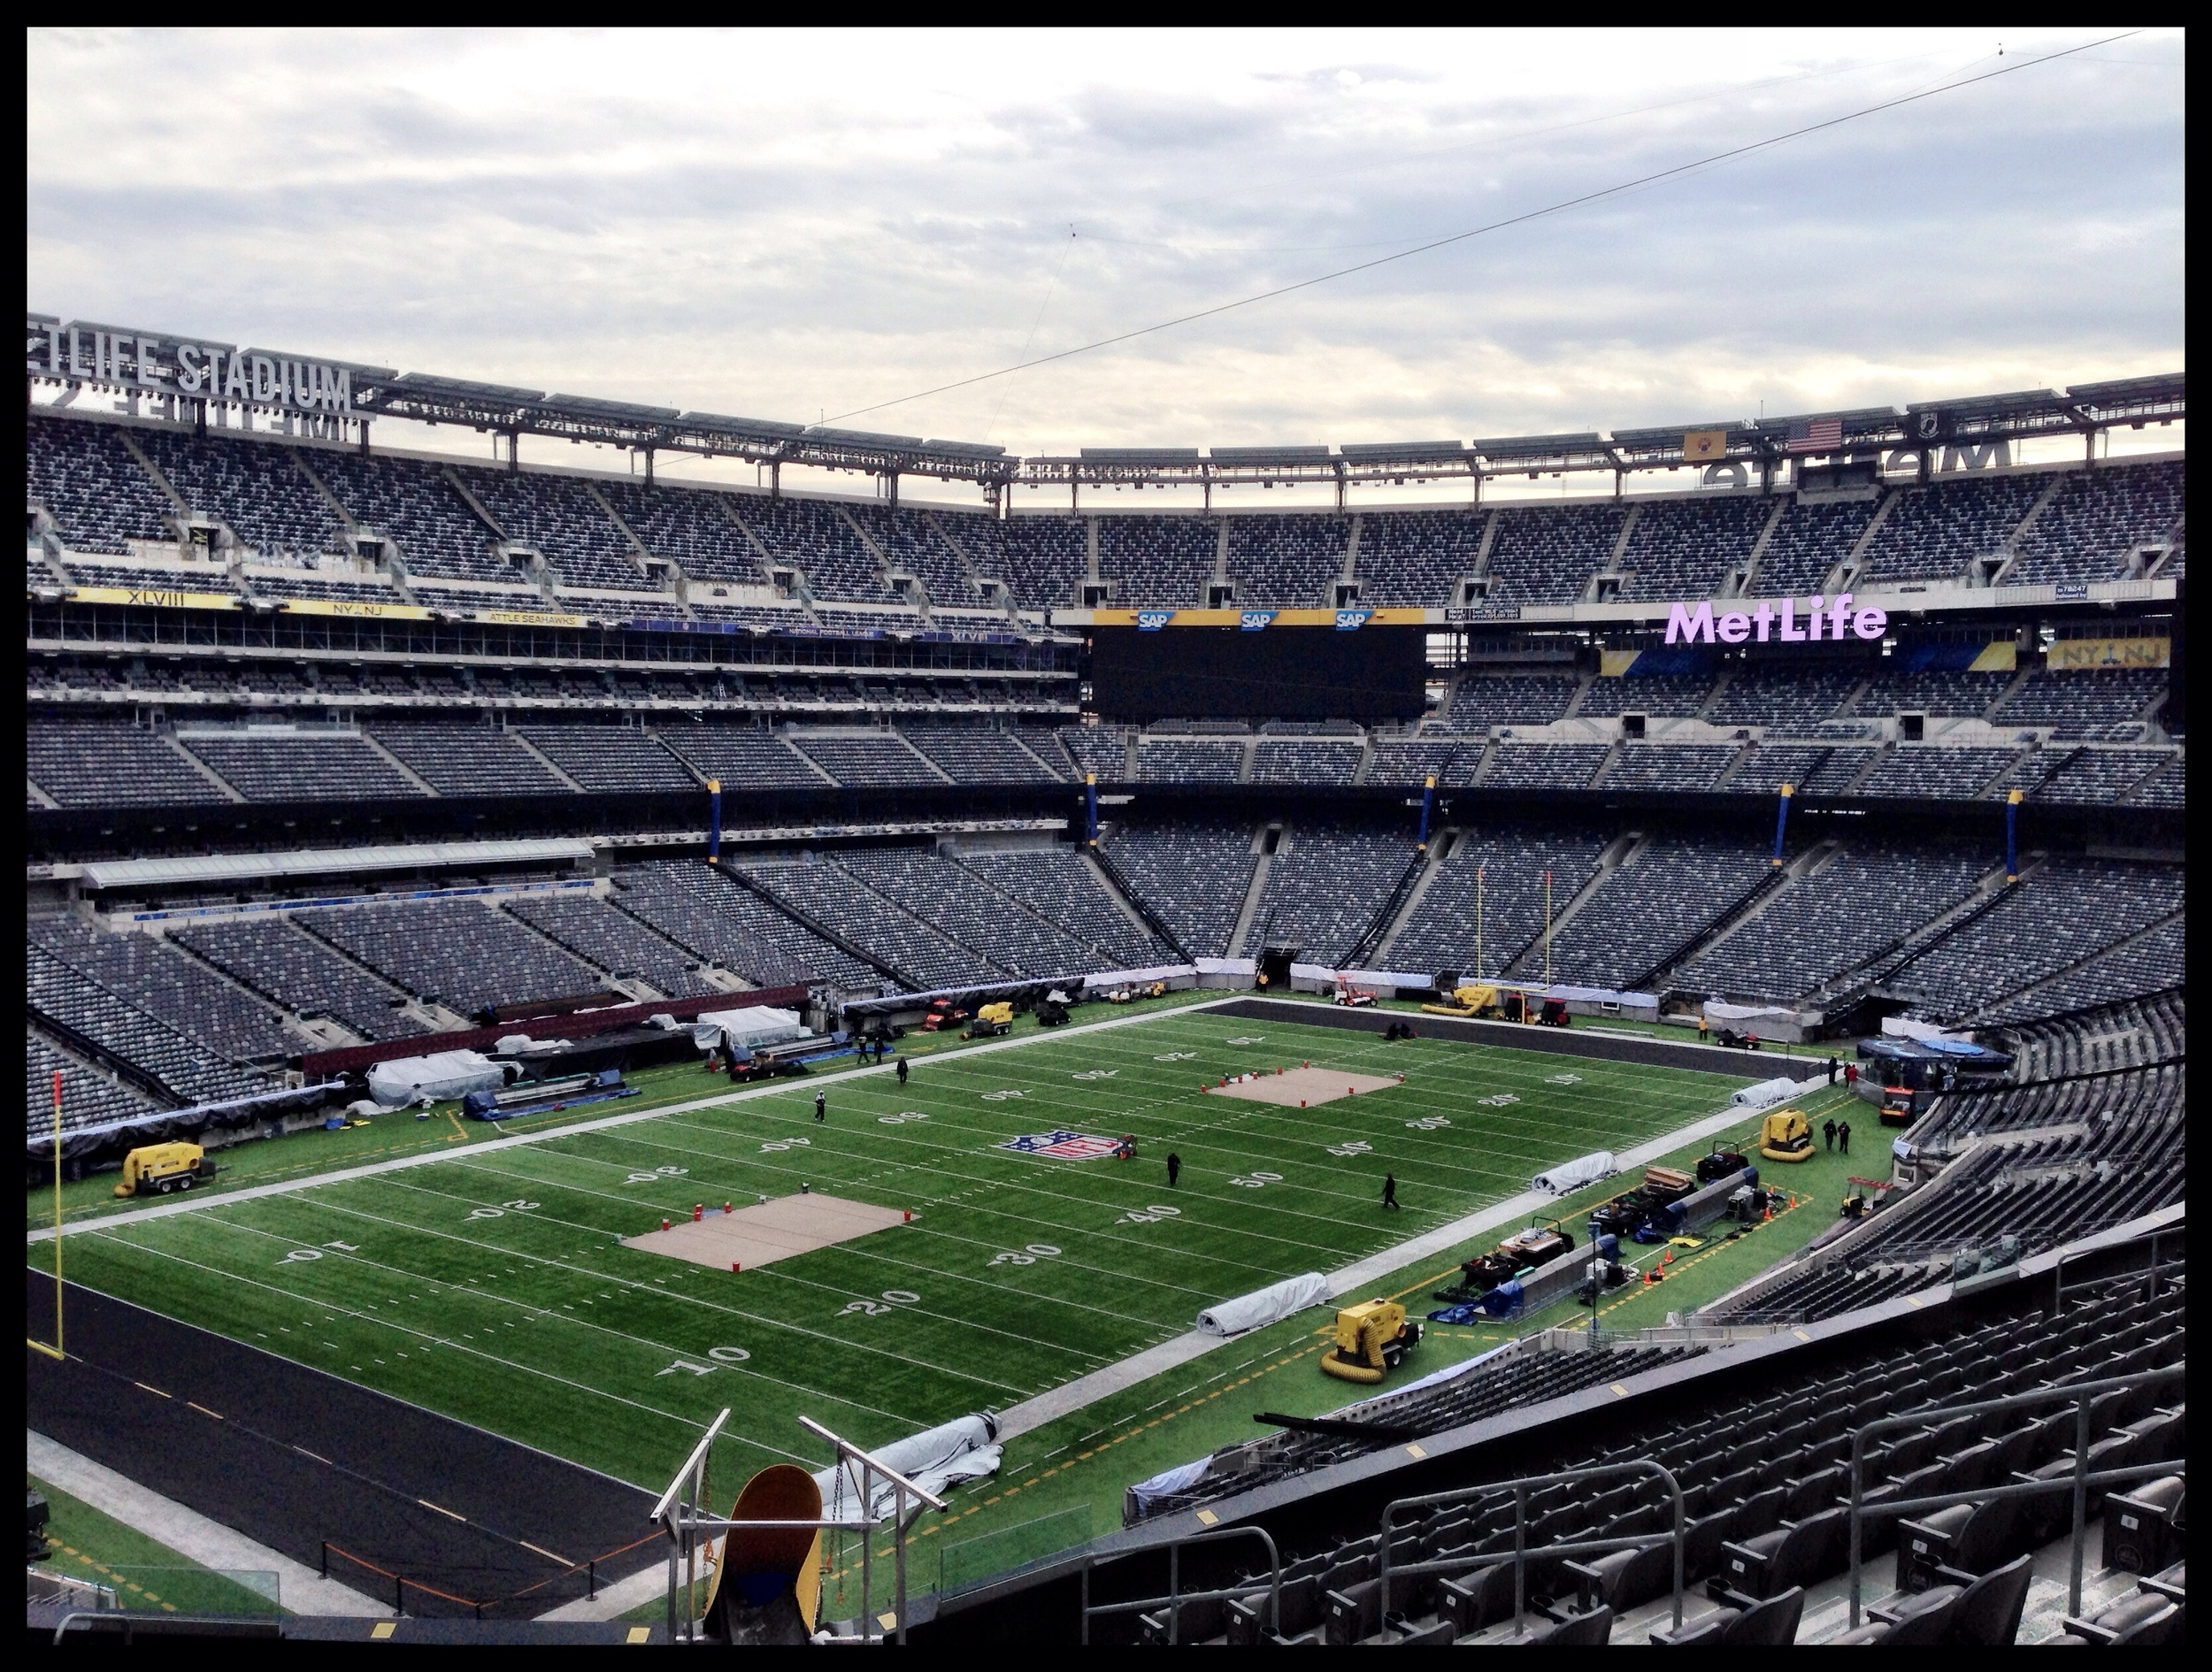 view of the field from the suites